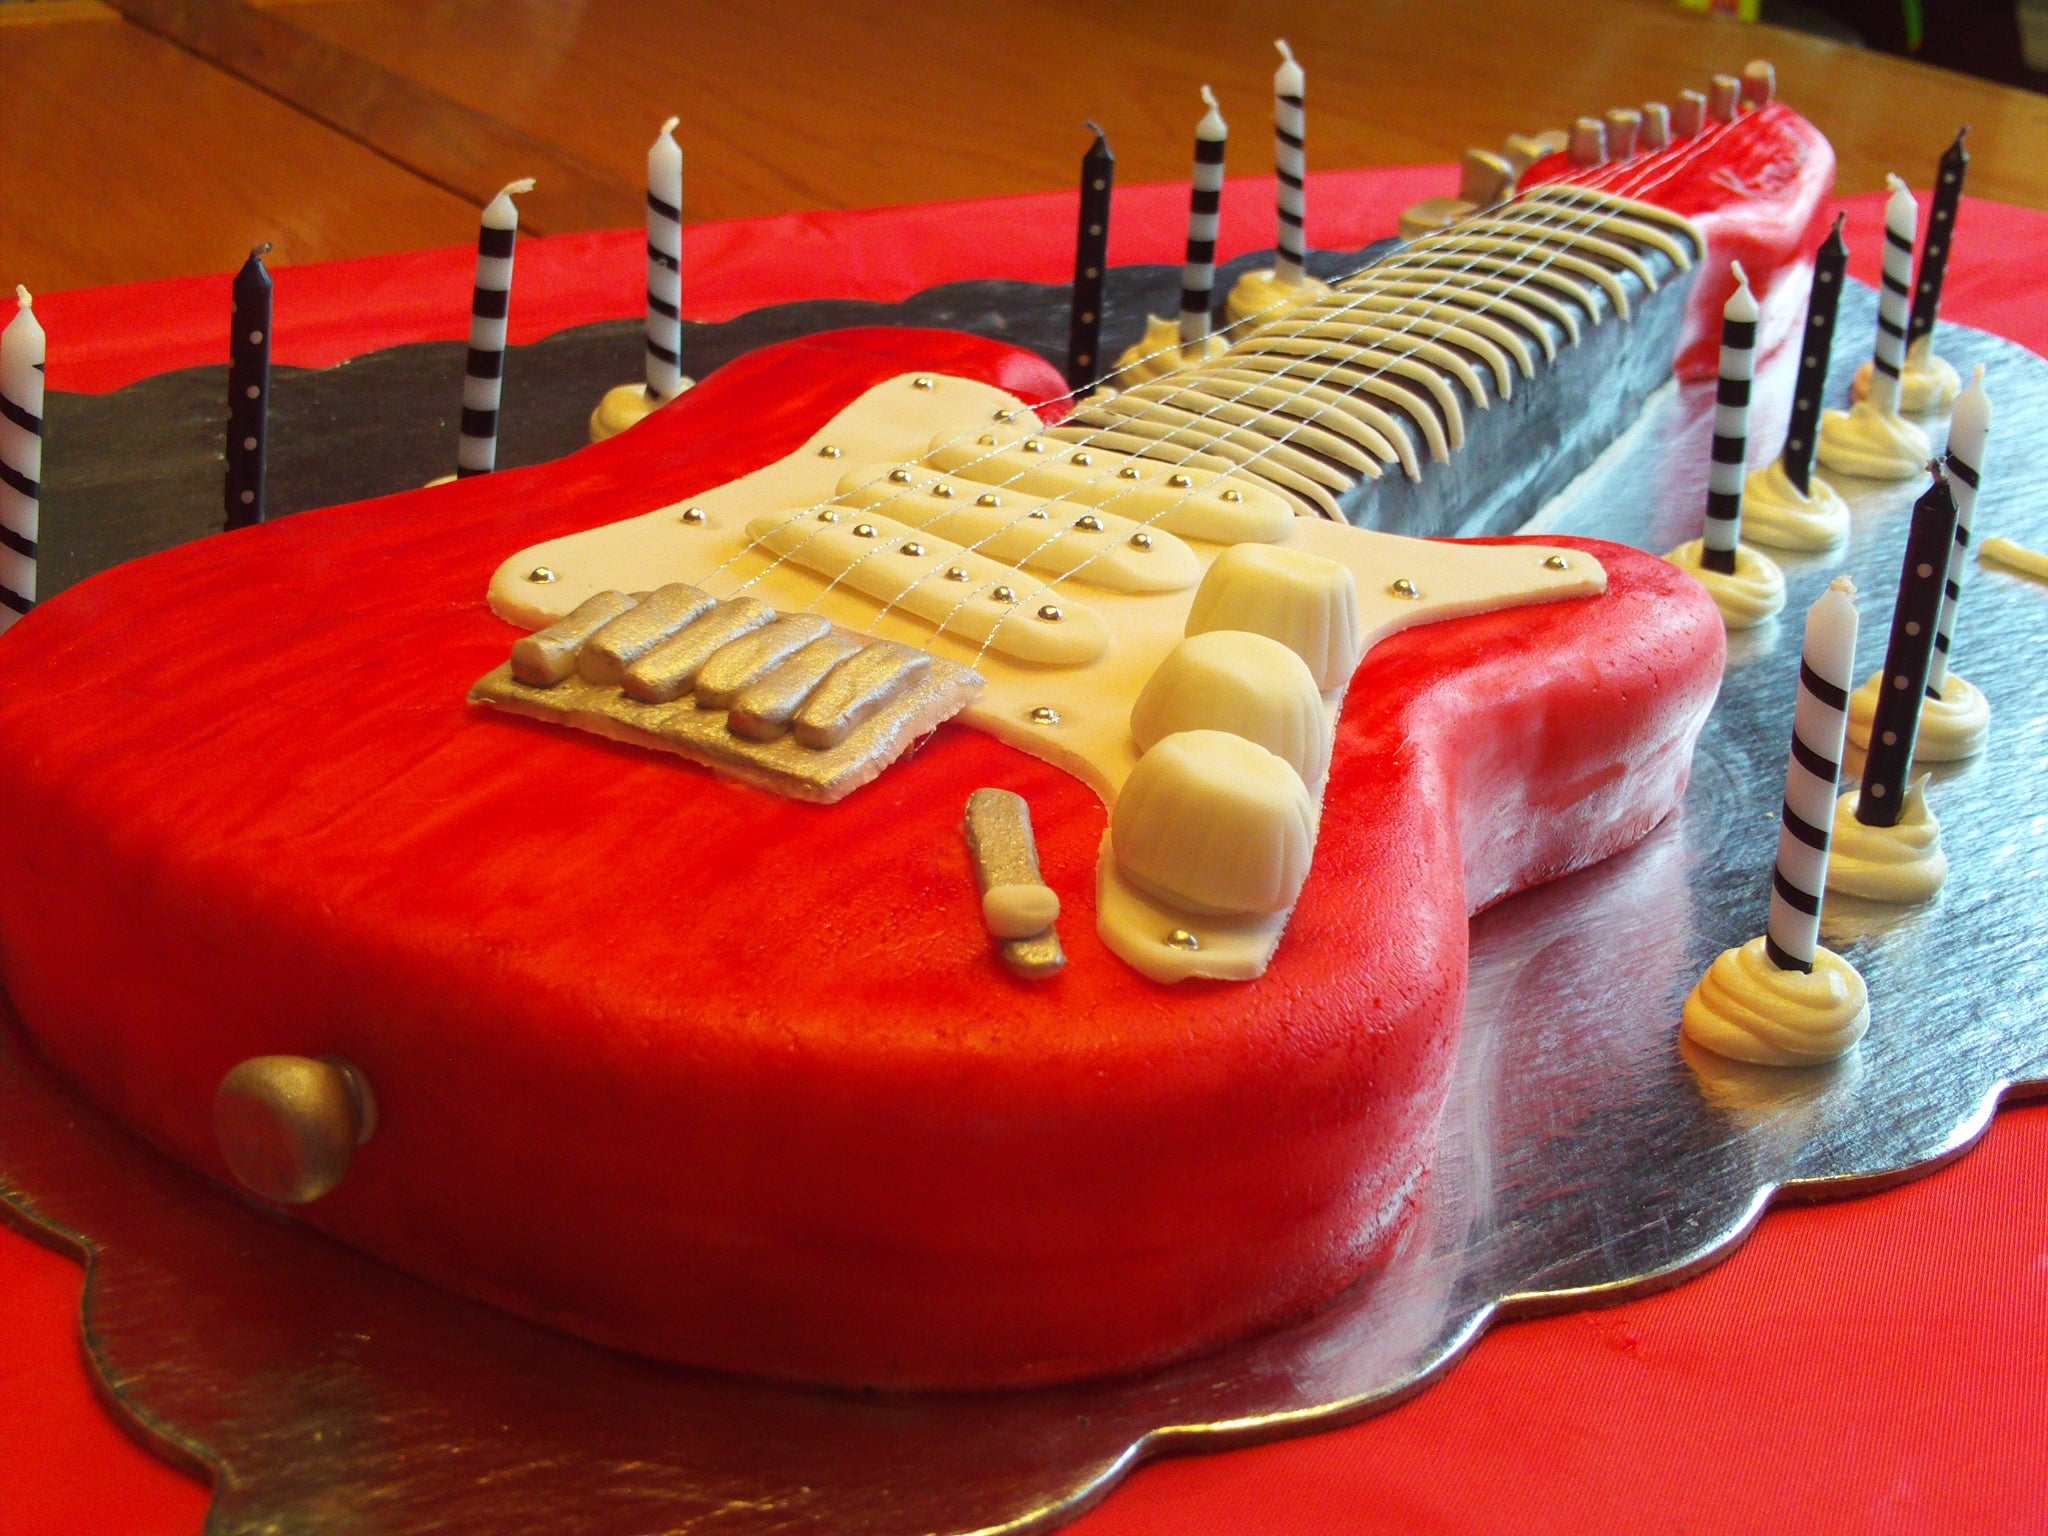 Sensational Electric Guitar Cake 6 Steps With Pictures Instructables Funny Birthday Cards Online Elaedamsfinfo